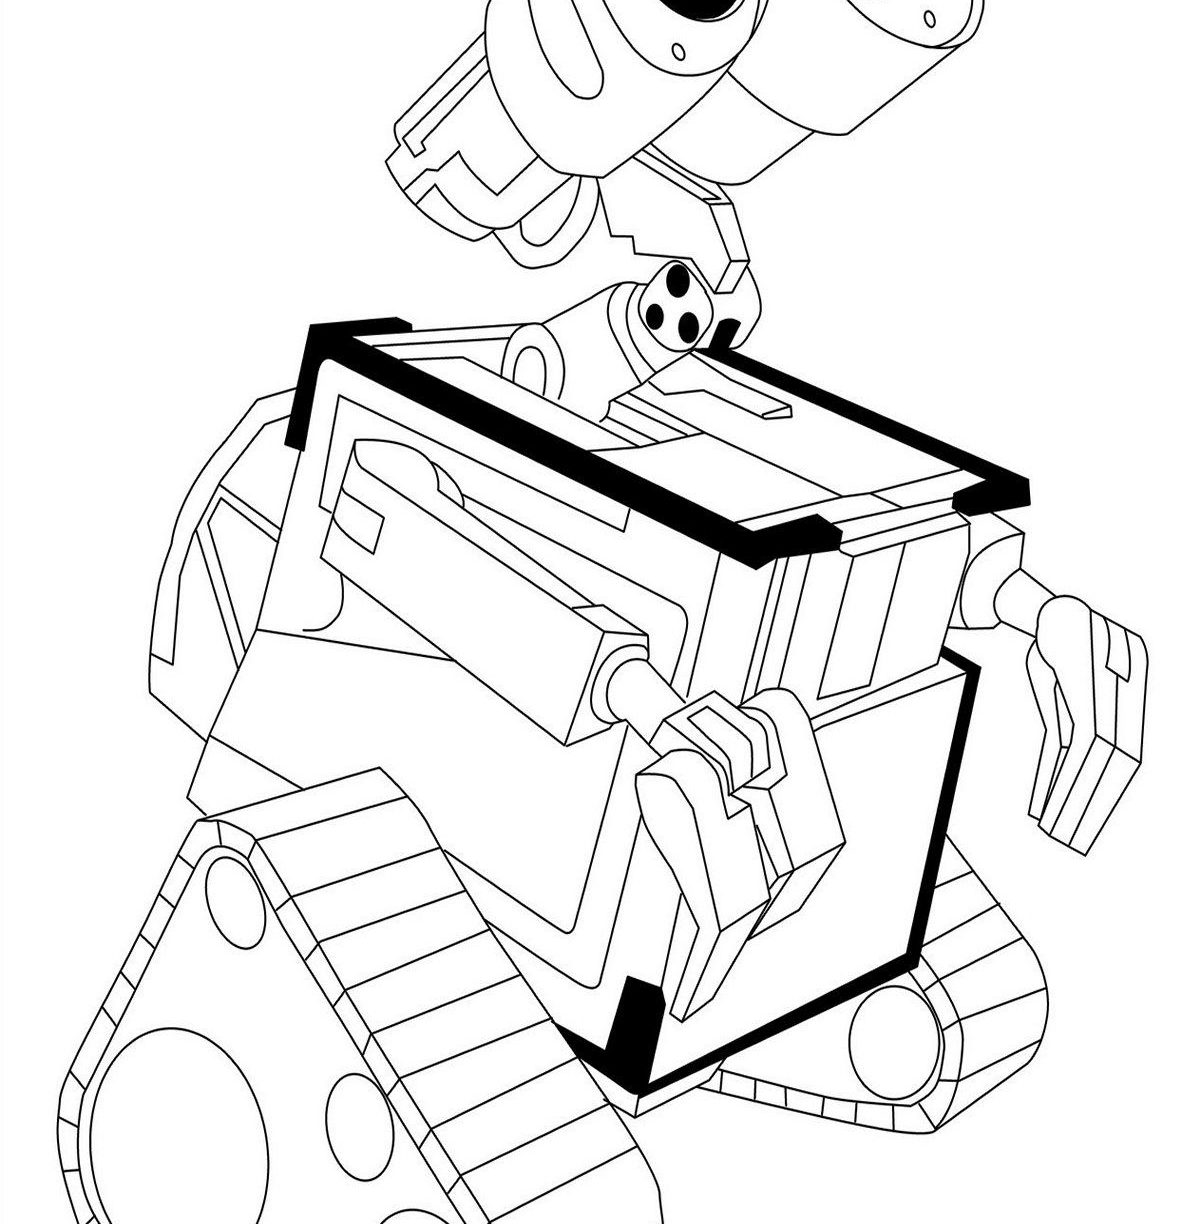 coloring robot drawing giant robot coloring pages coloring pages drawing robot coloring